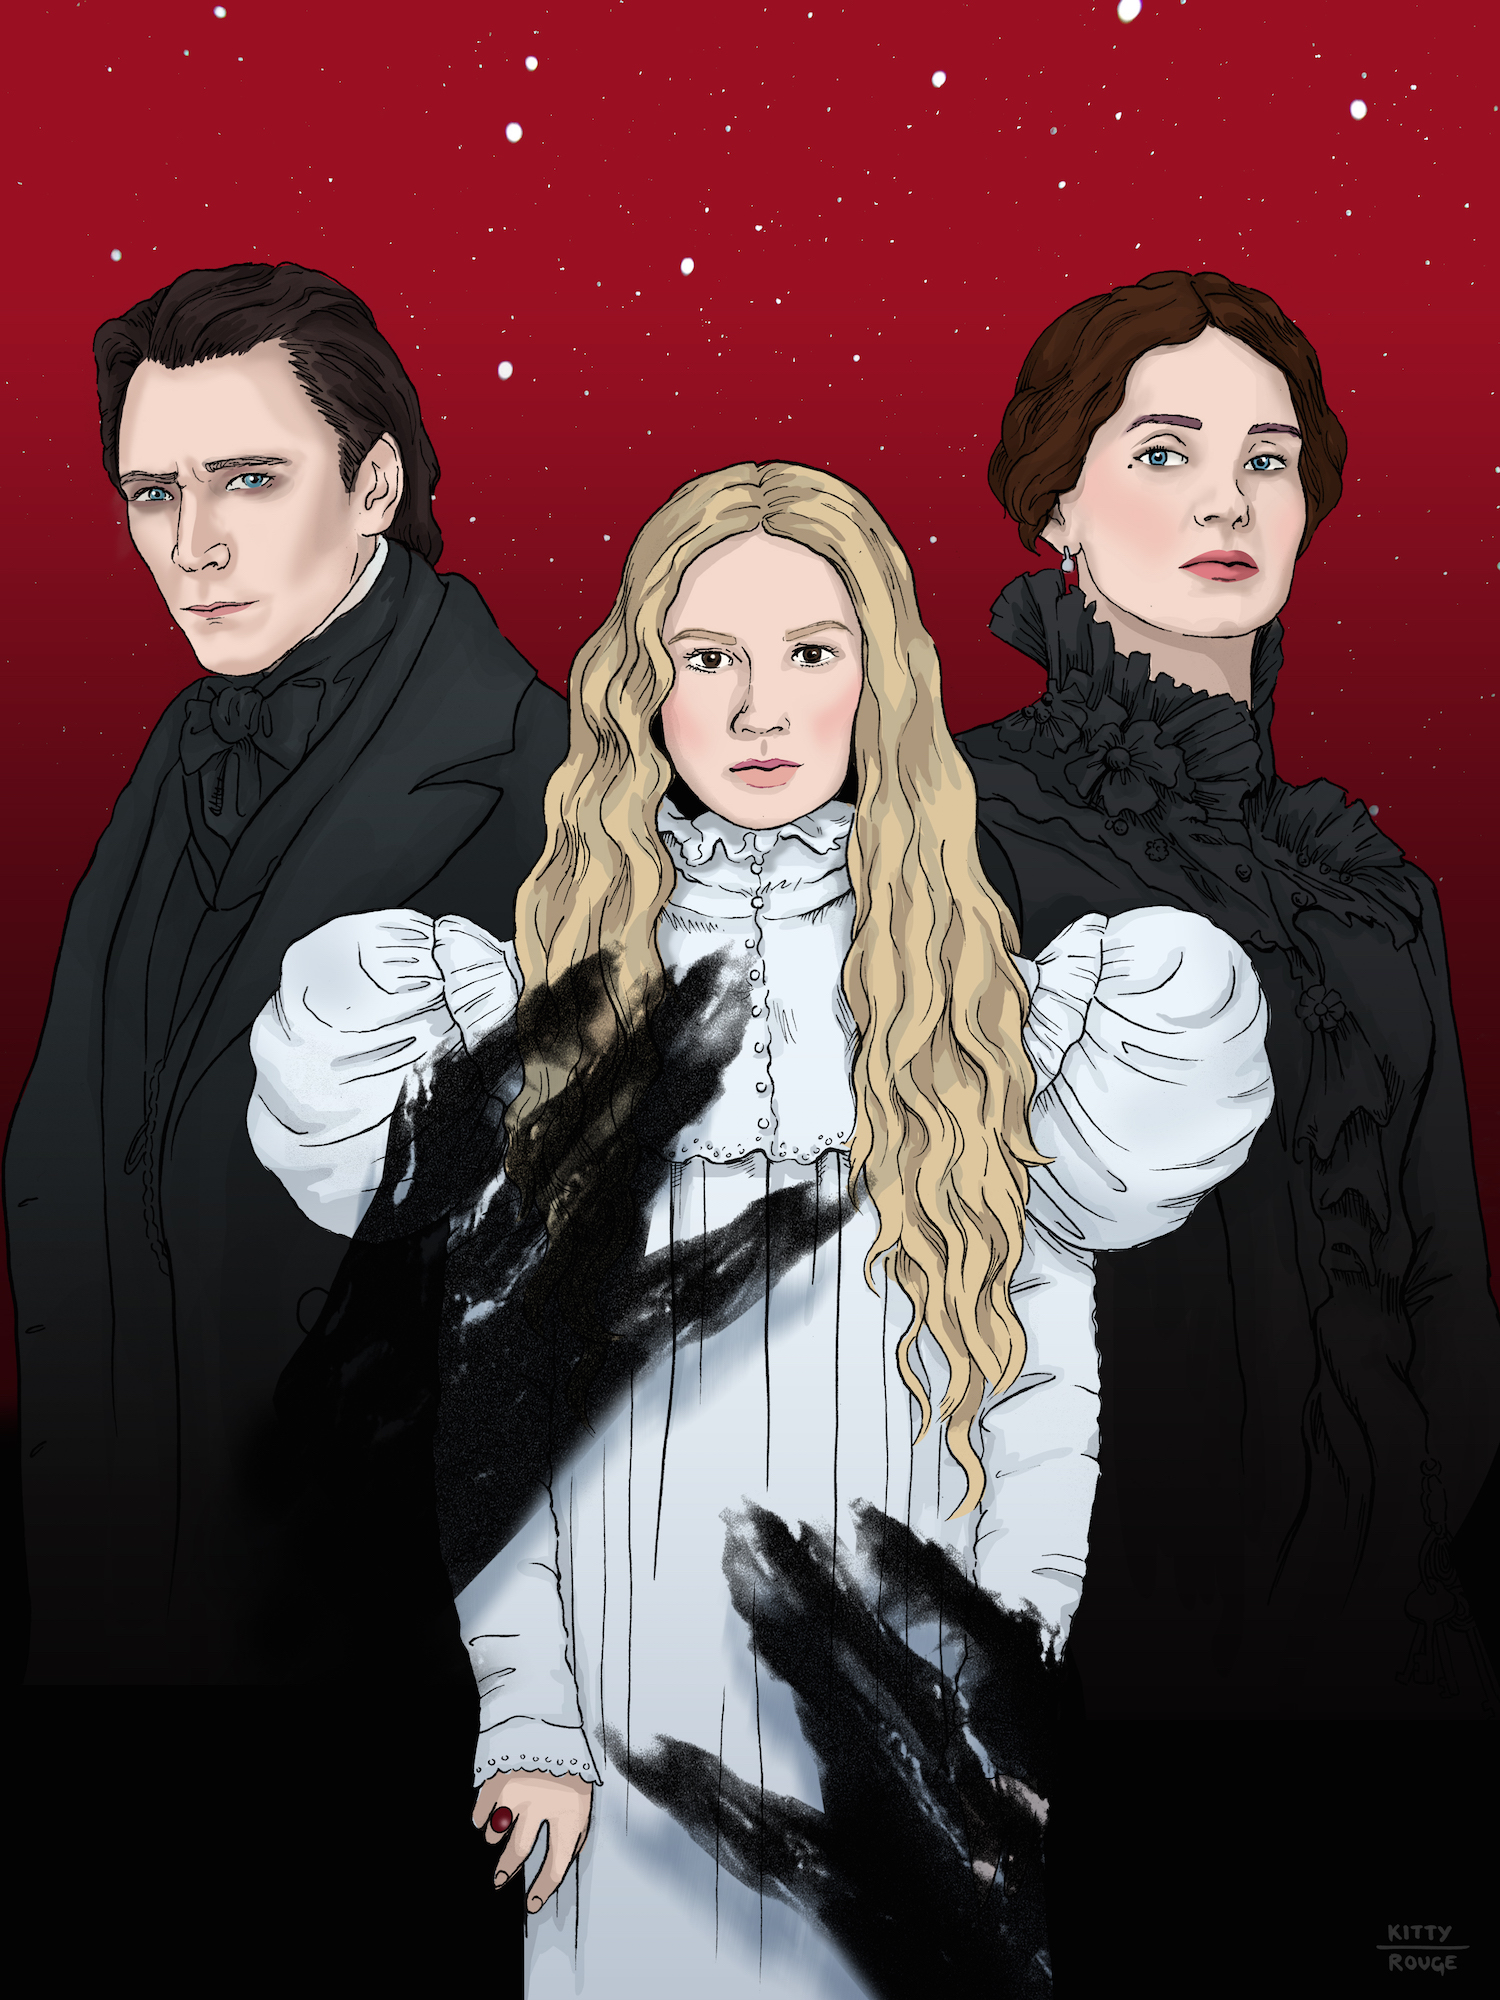 Crimson Peak kitty rogue